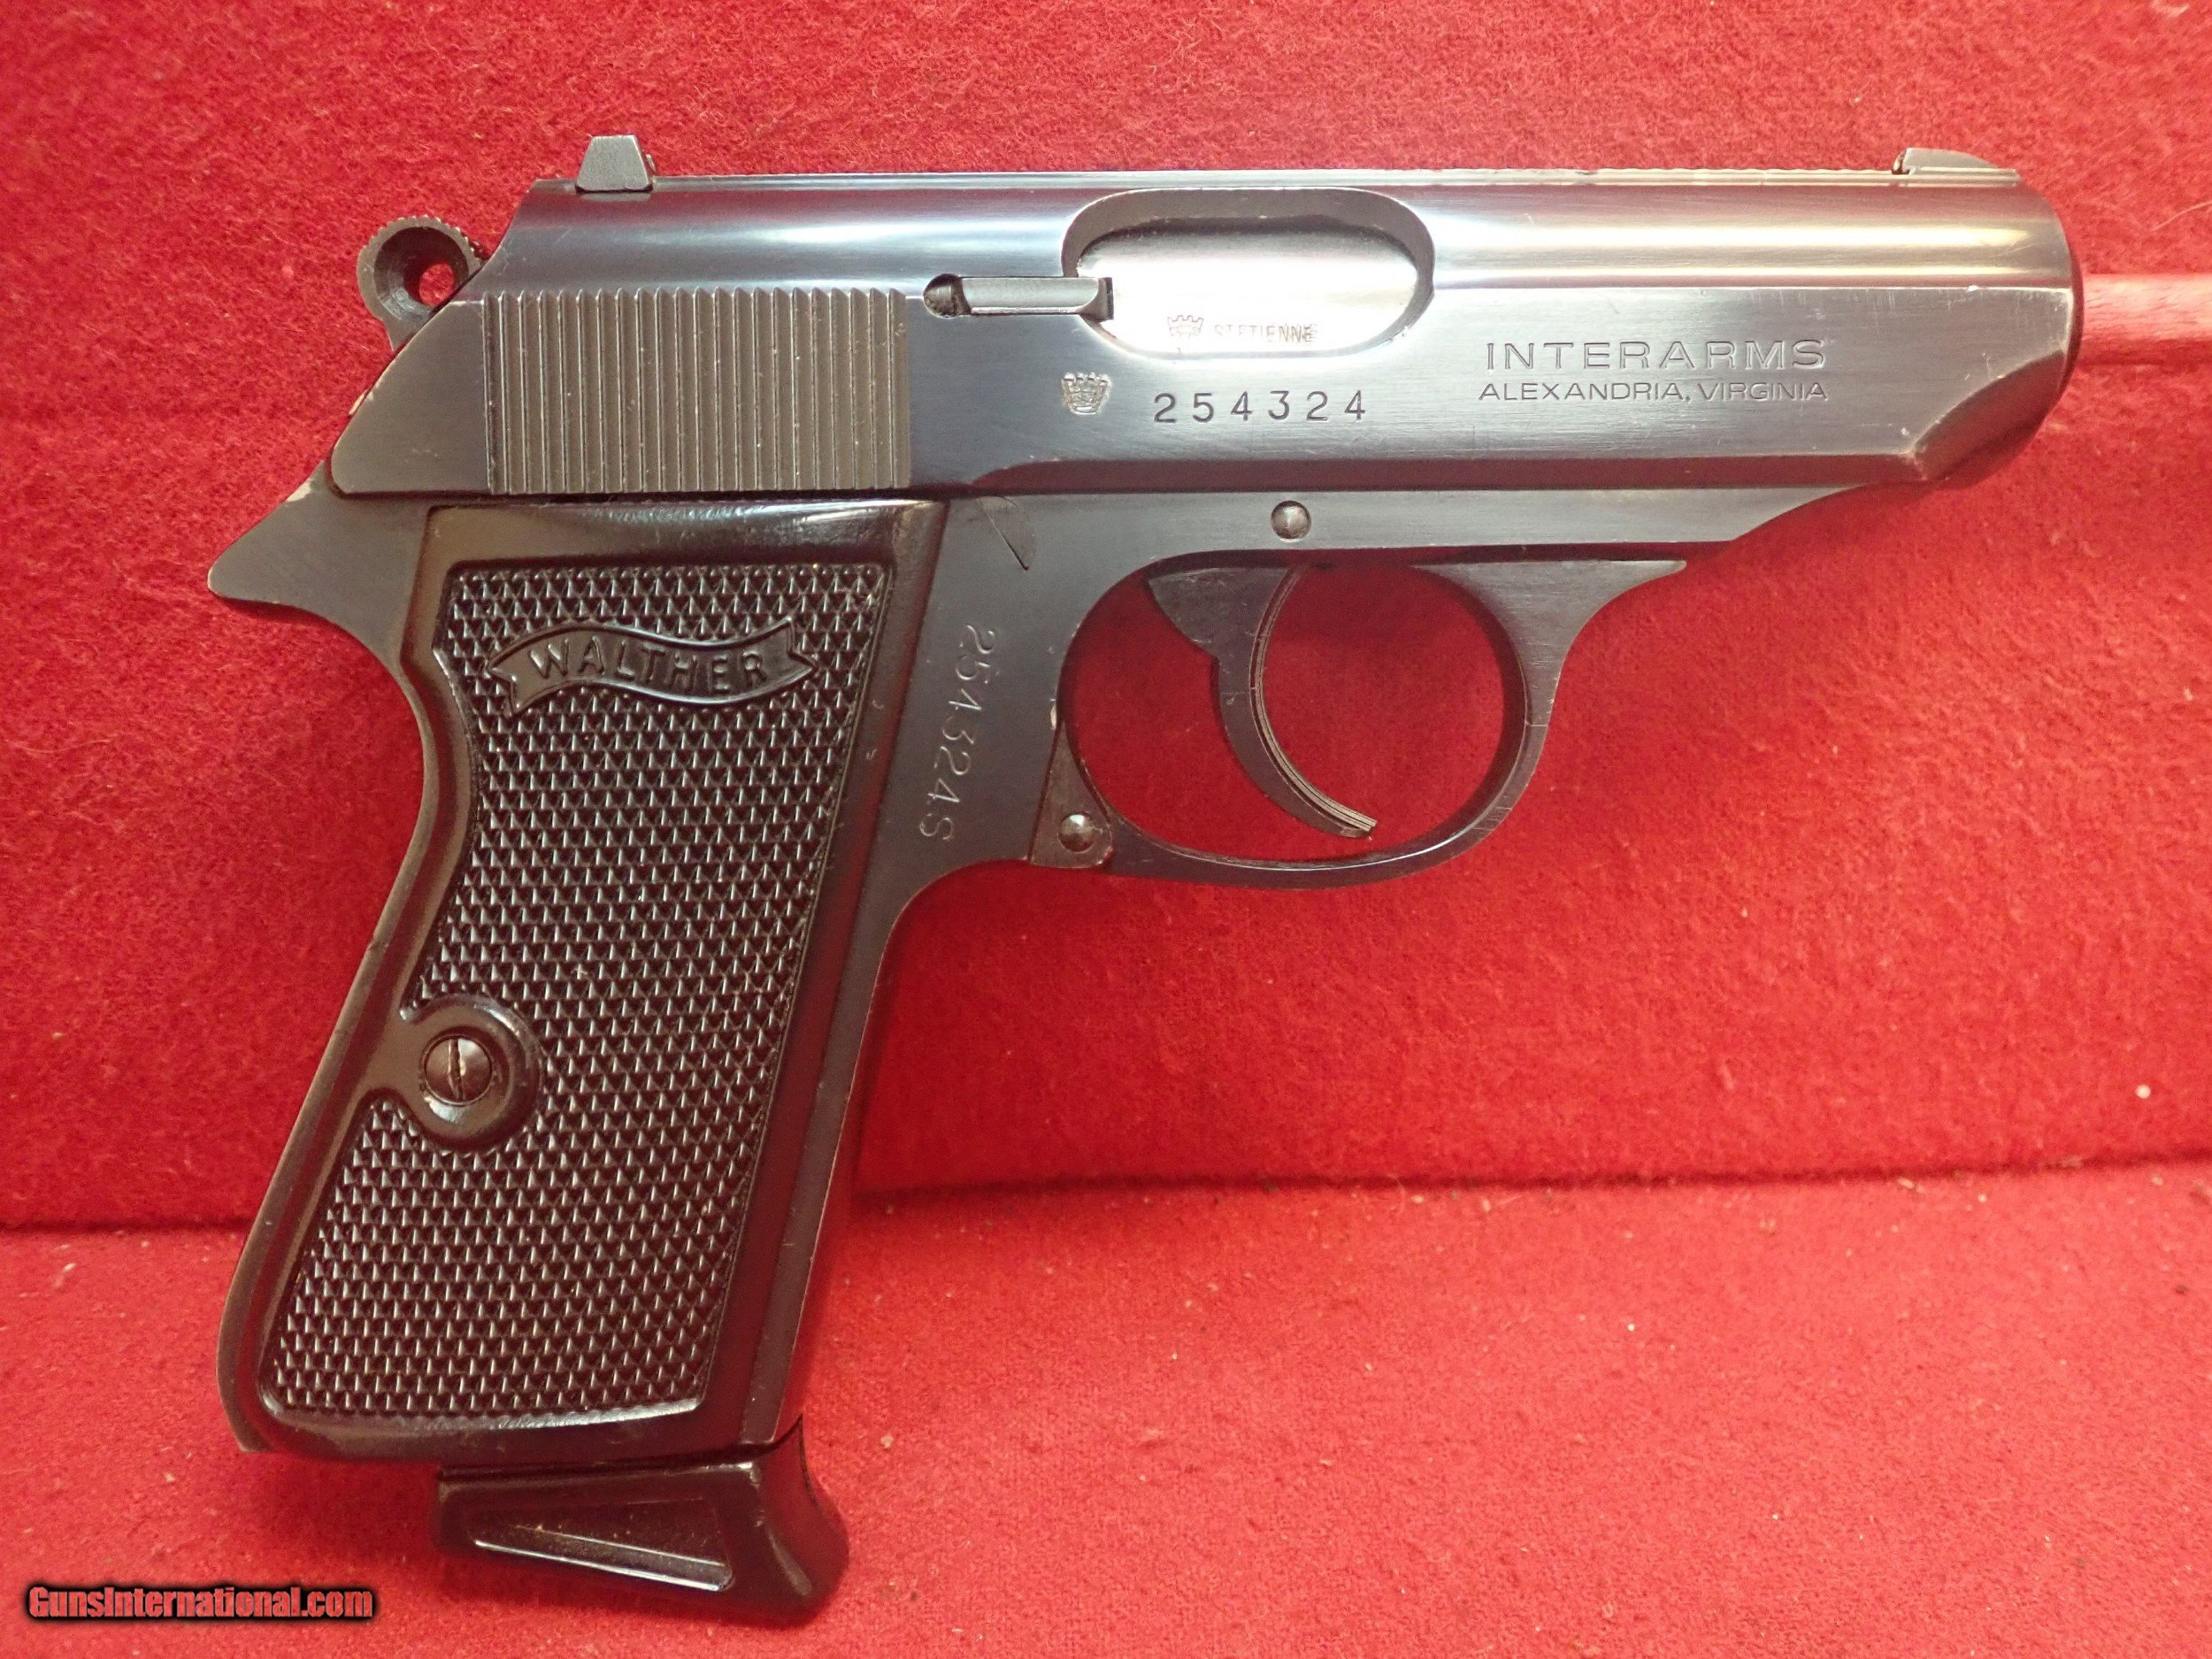 Walther (Interarms) Made in France PPK/S  380acp 3